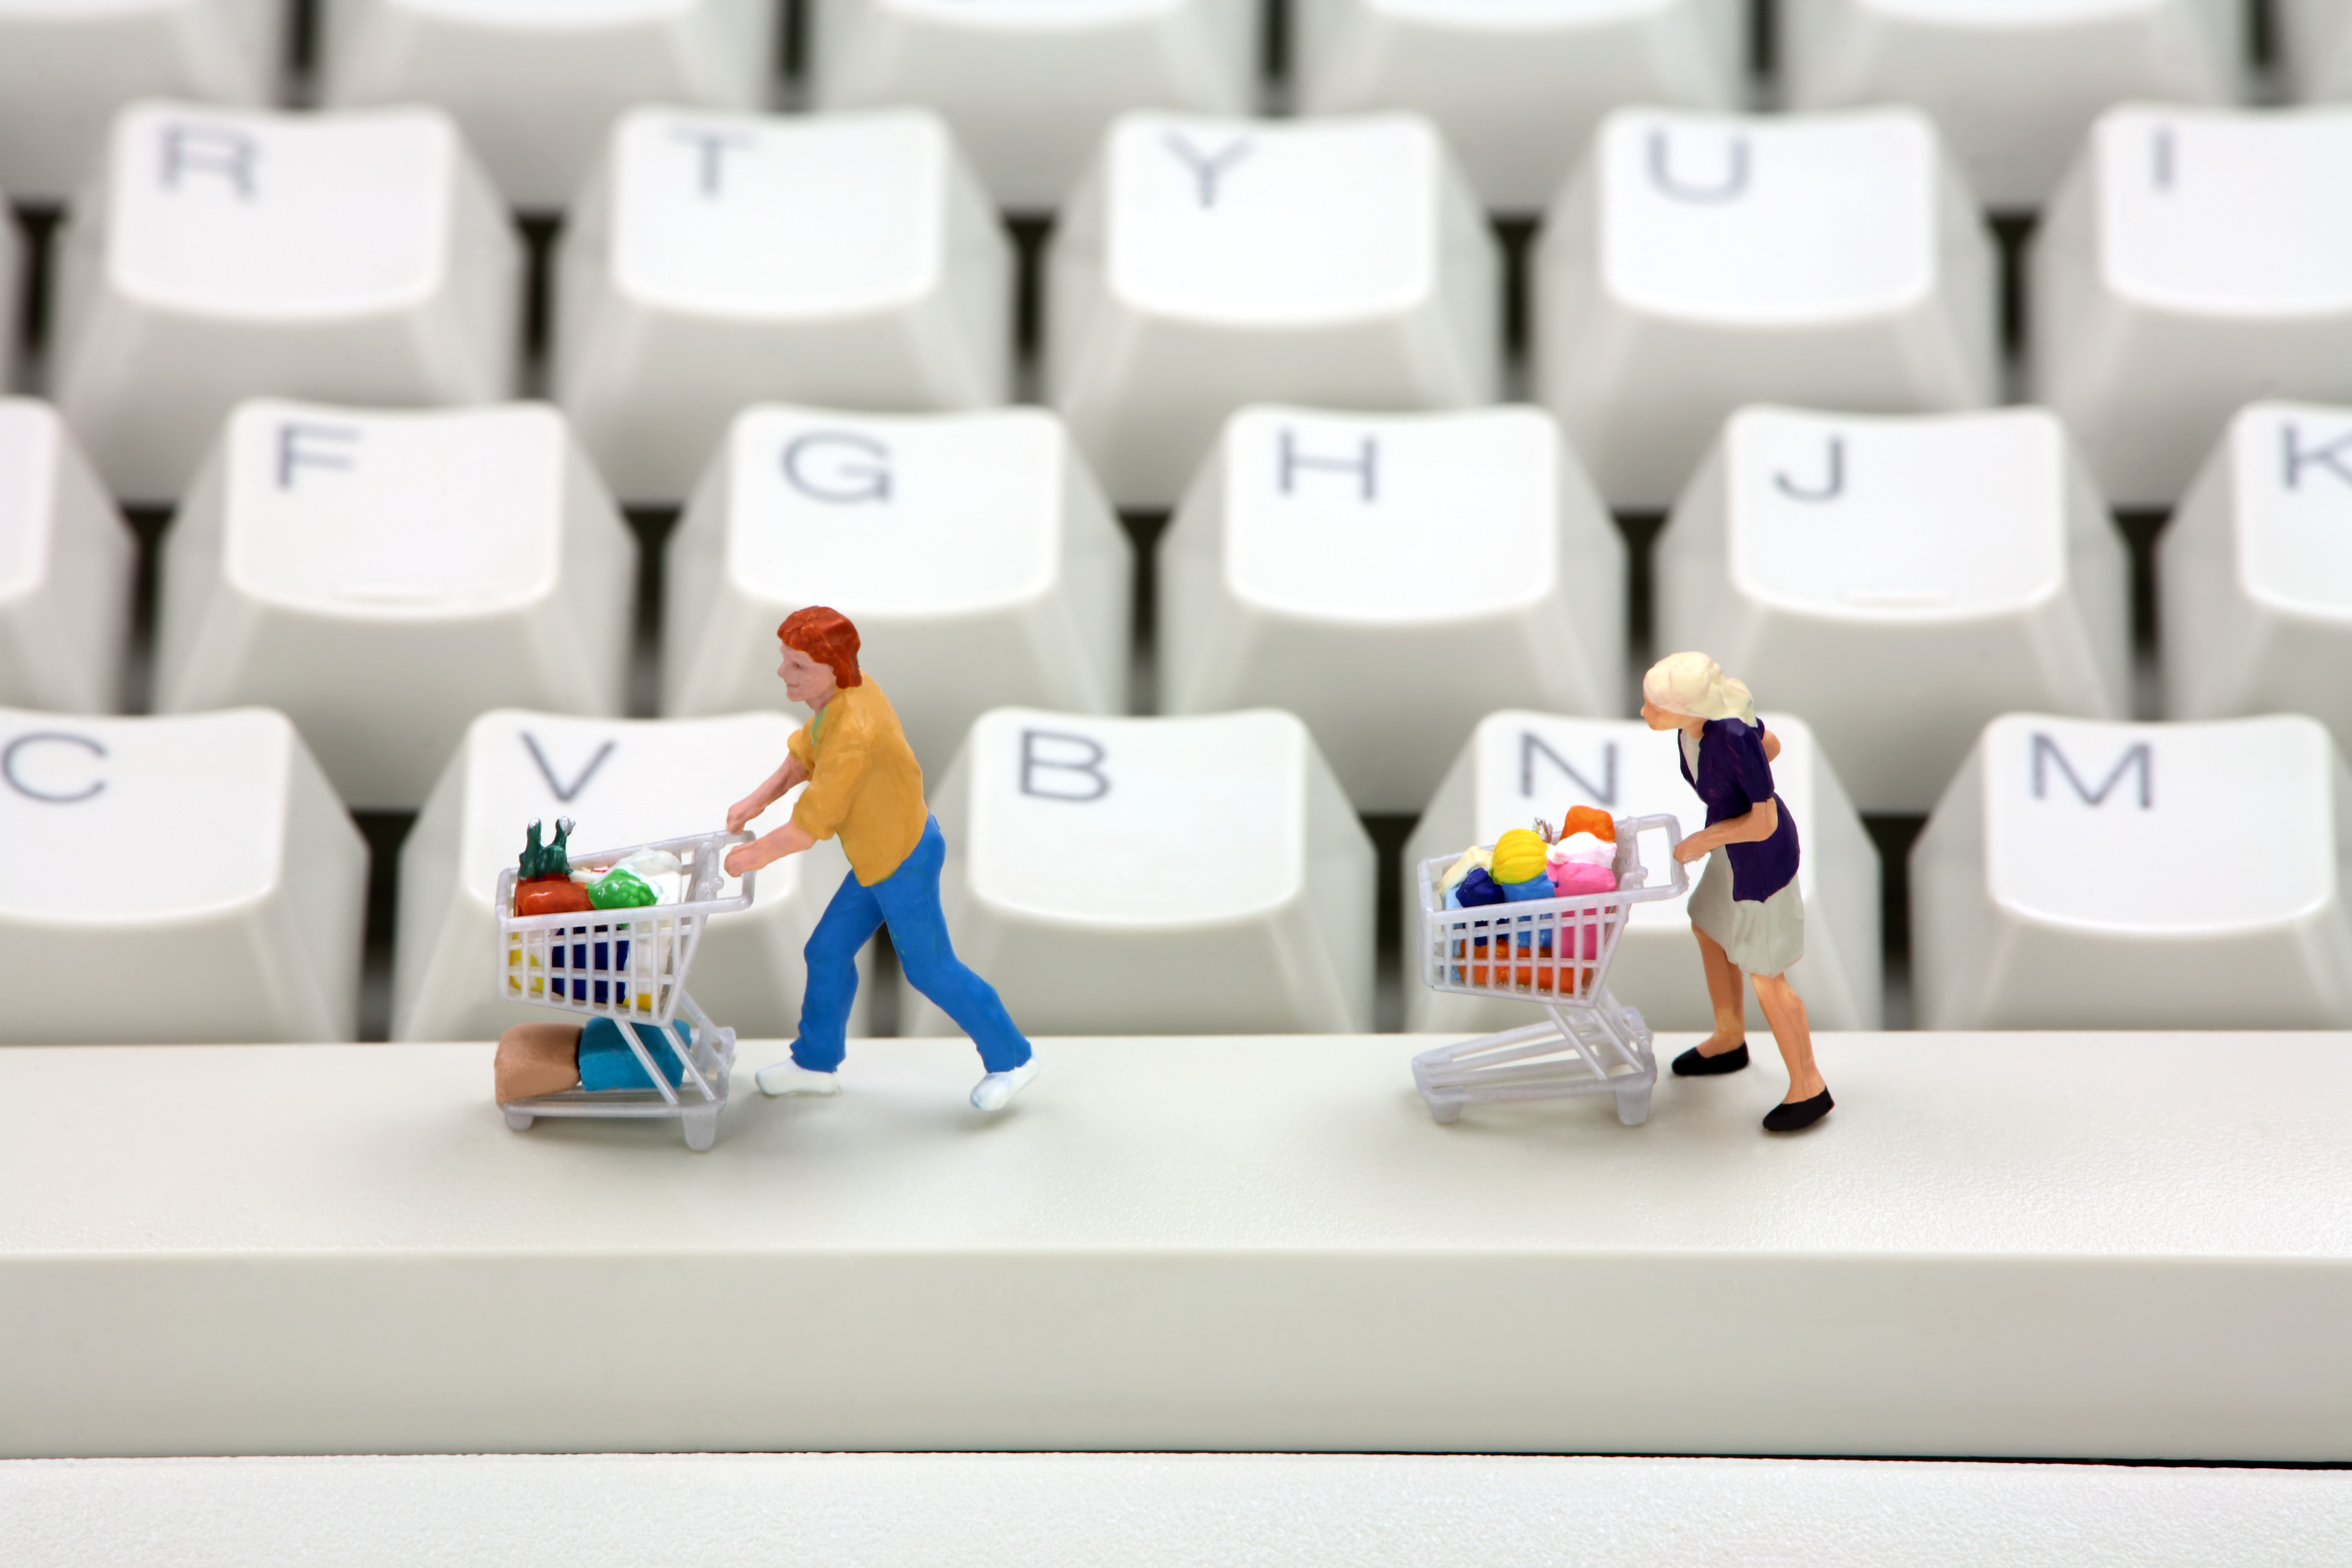 market research on online shopping Online shopping market is gaining tremendously from the significant rise in the disposable income the middle class consumers across the worldonline shopping market.